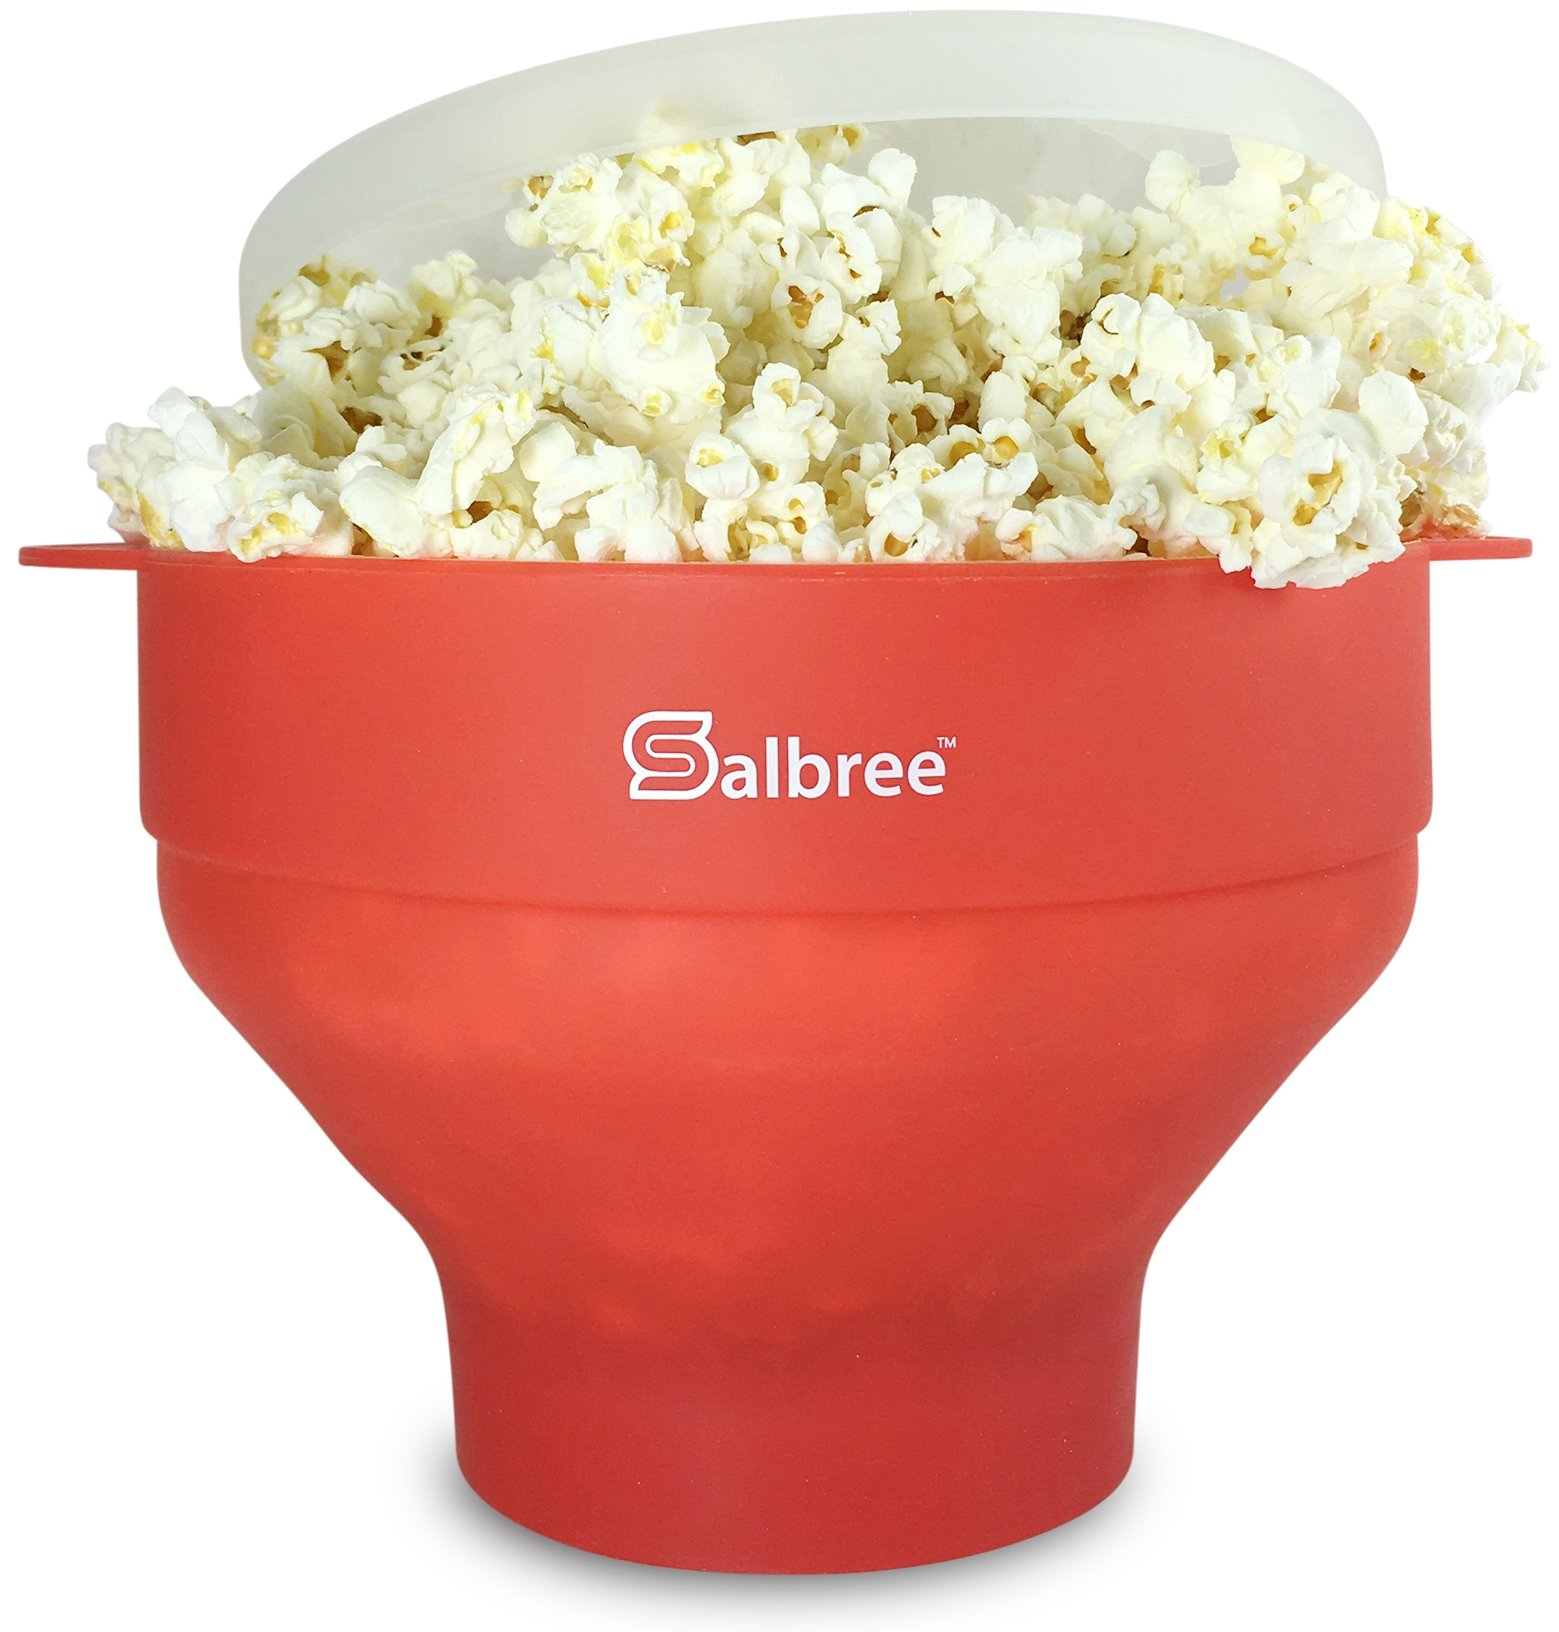 The Original Salbree Microwave Popcorn Popper with Lid, Silicone Popcorn Maker, Collapsible Bowl BPA Free (Red)